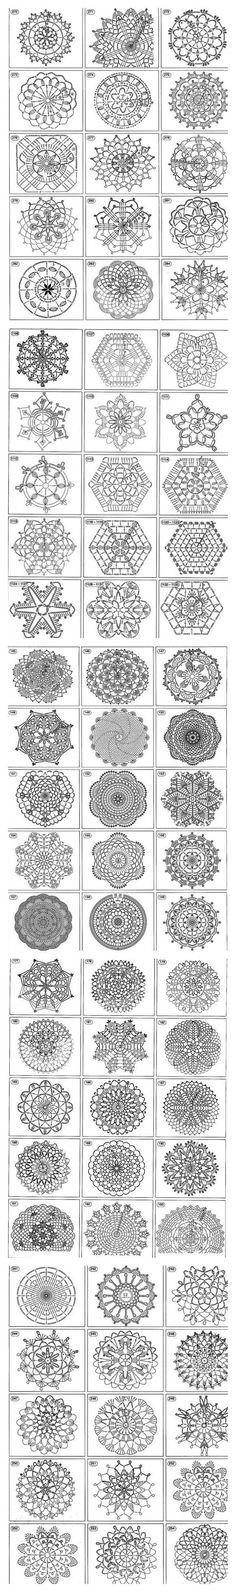 Over 1400 free crochet motif, afghan squares, coasters, snowflakes, doilies, triangles stitch chart diagram patterns.